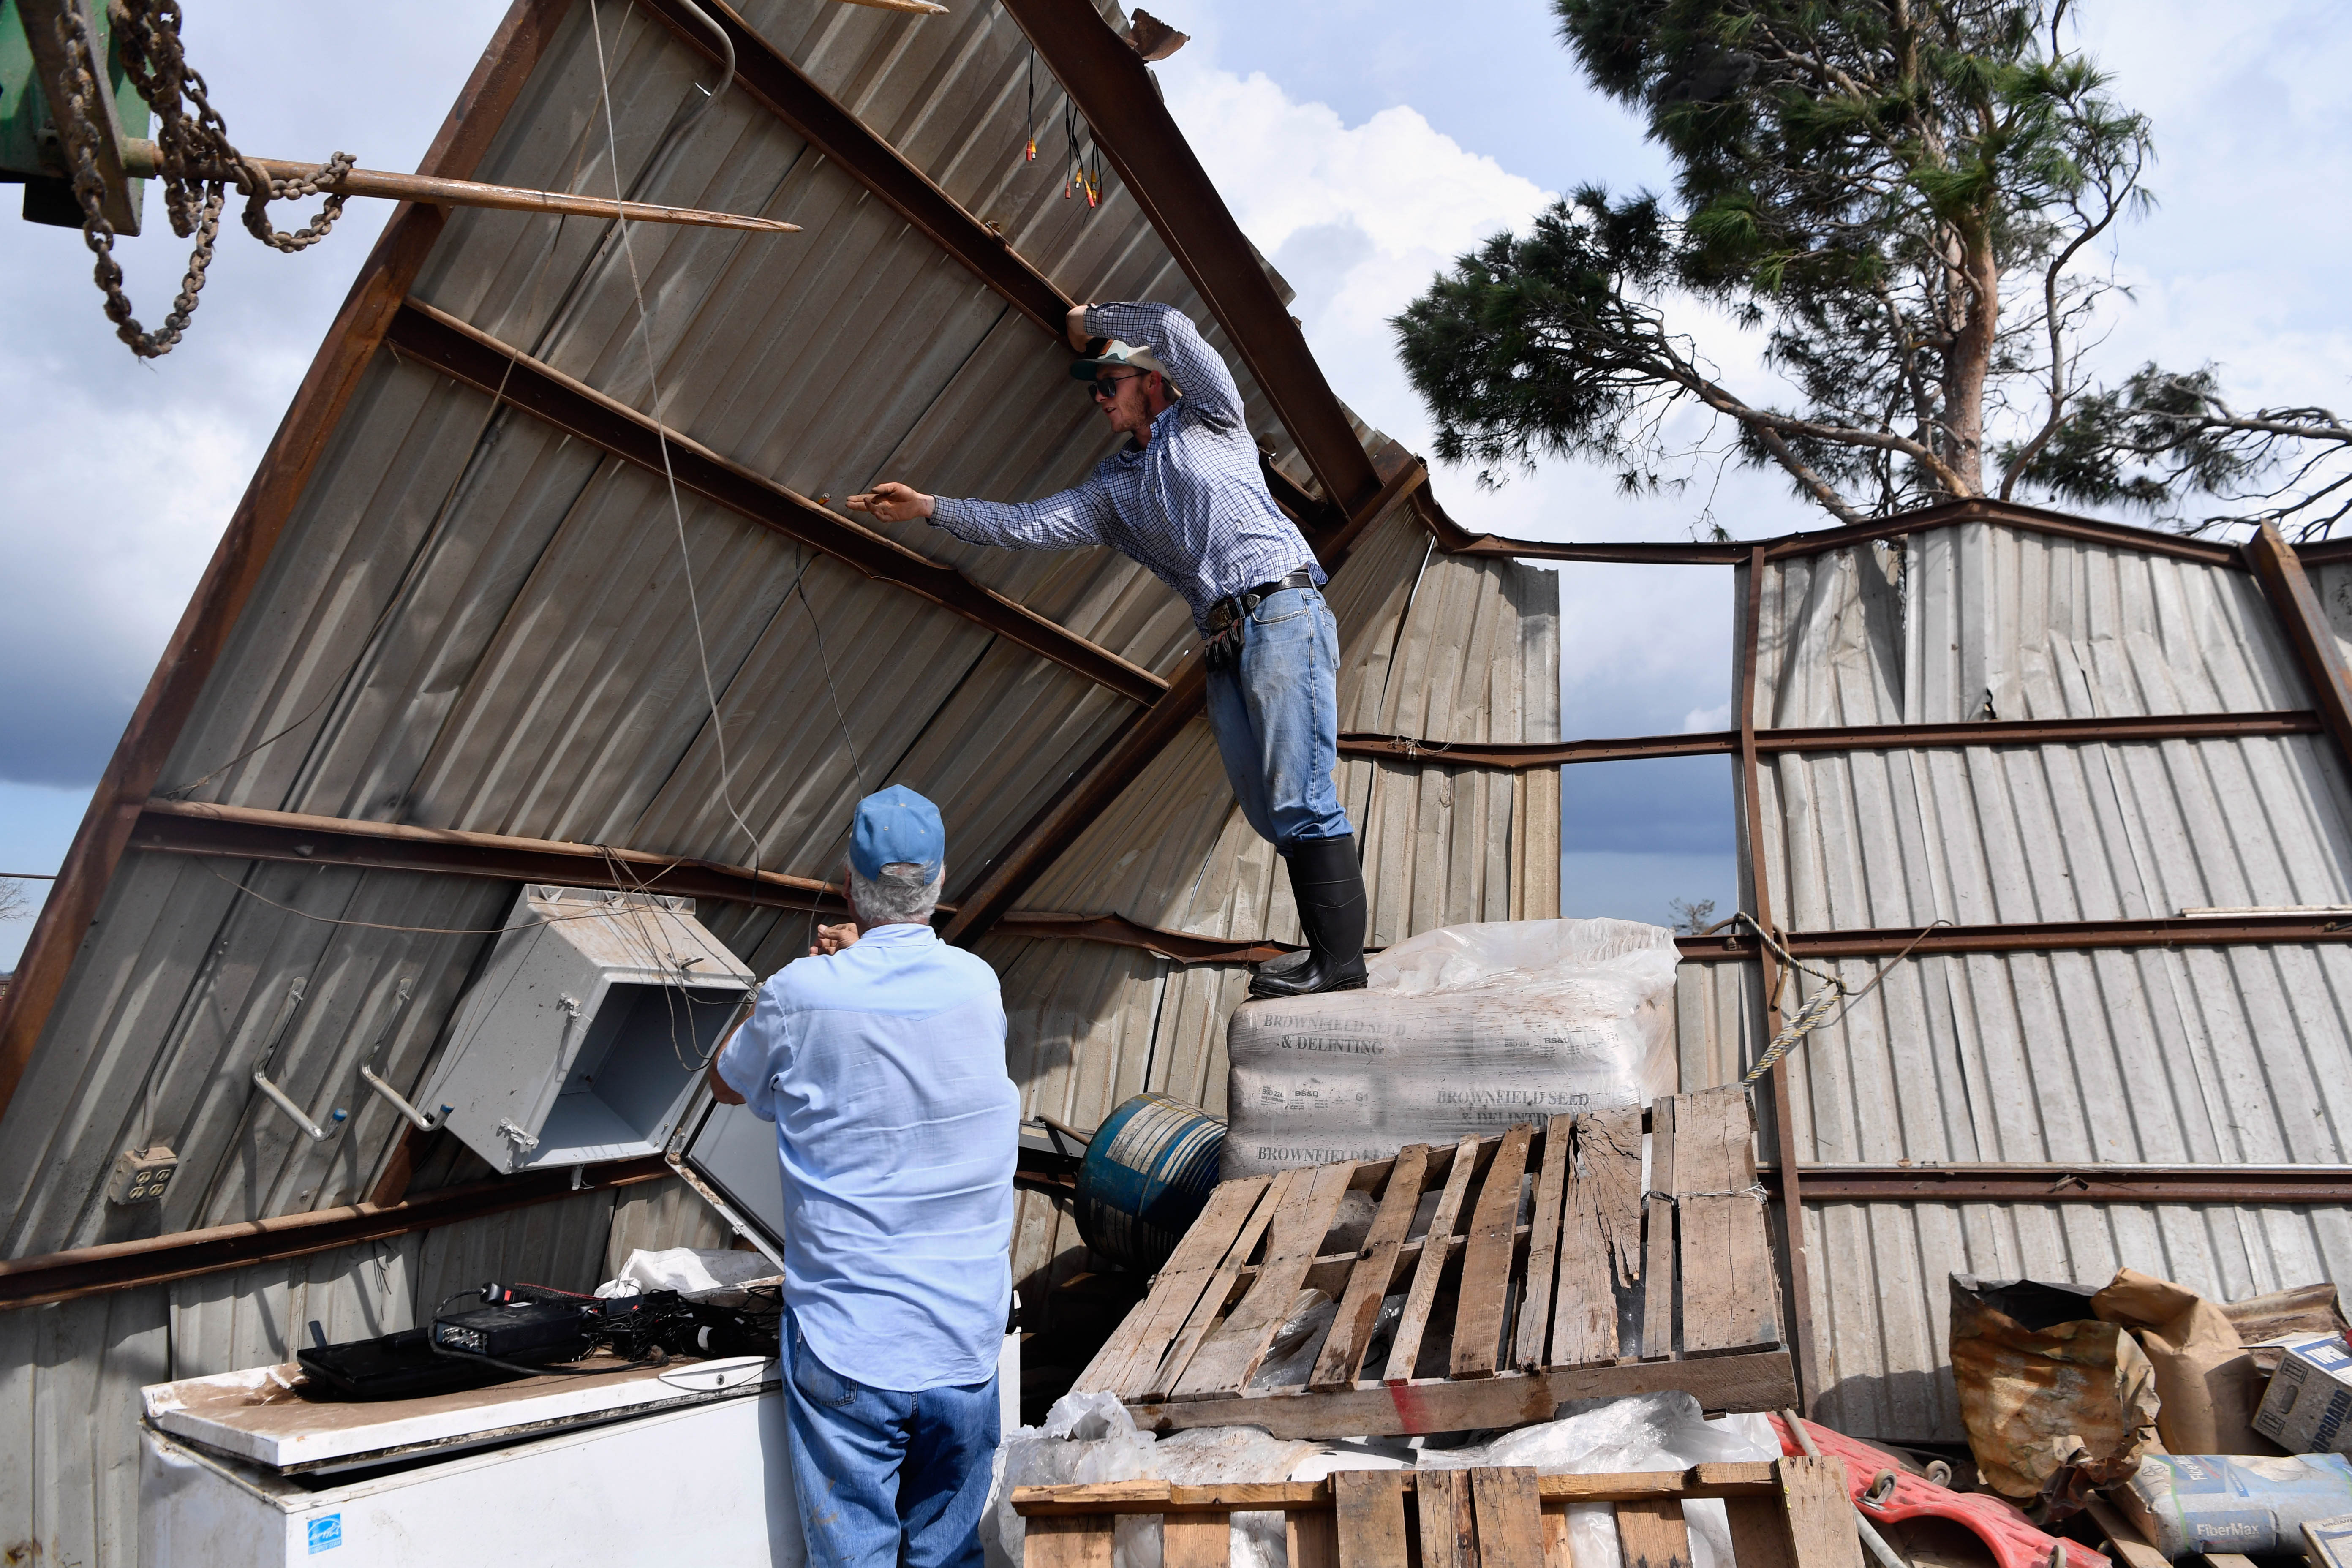 Marshal Mepps stands atop a pallet of supplies inside the remains of Randall Franke's workshop Thursday March 19, 2020. Danny Lewis, Franke's brother-in-law, watches. At least three tornadoes were confirmed to have swept through the Abilene area earlier in the day around 1:30 a.m.